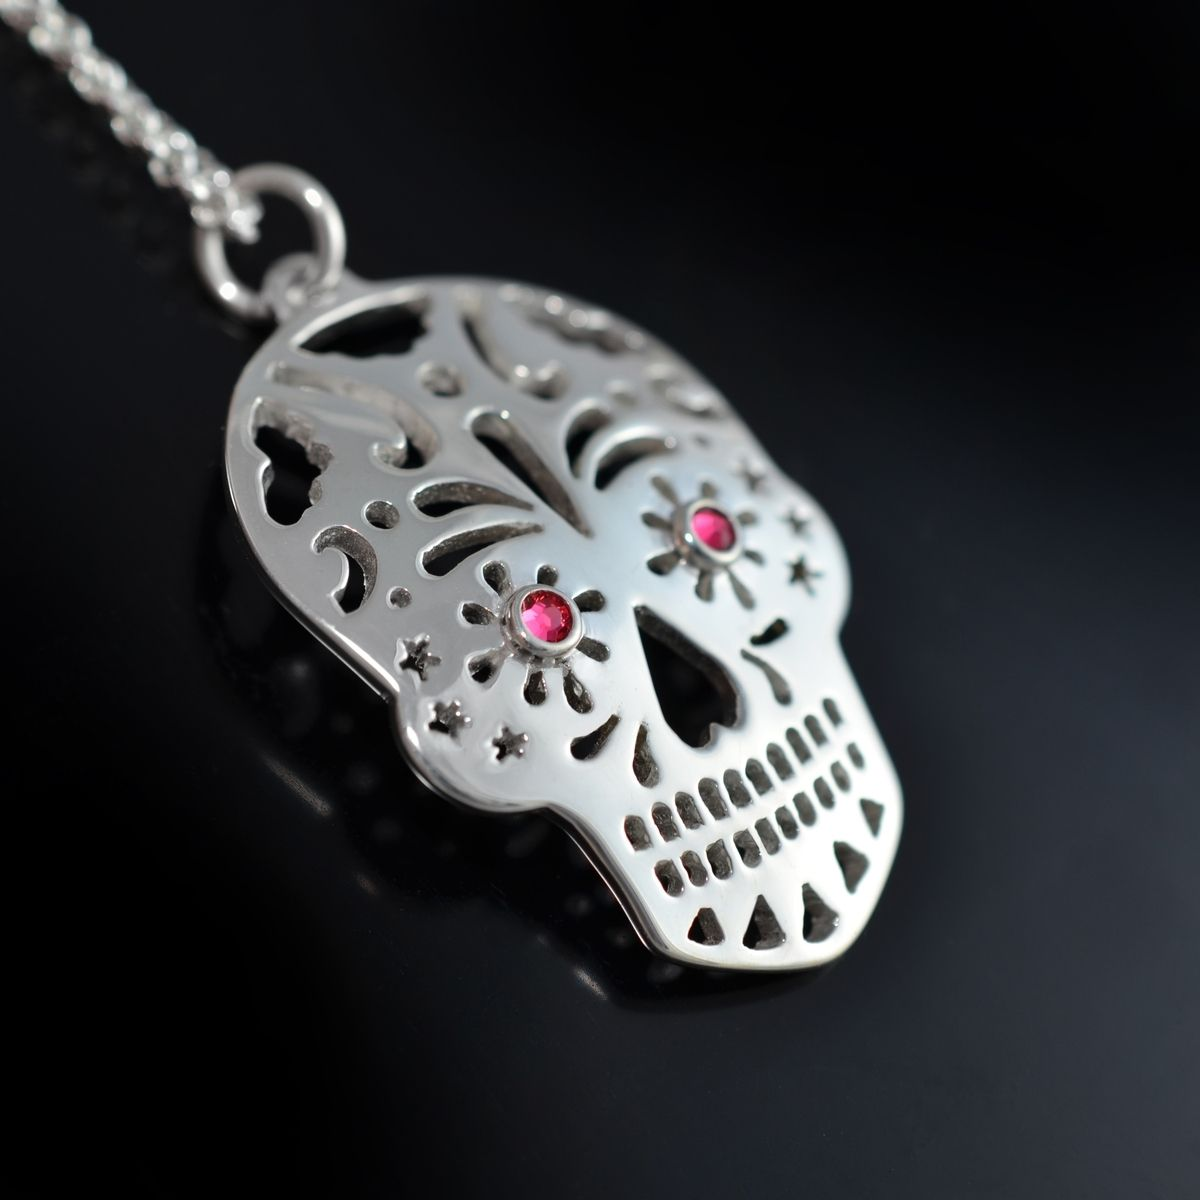 jewelry com dp sterling silver sugar pendant necklace large skull amazon